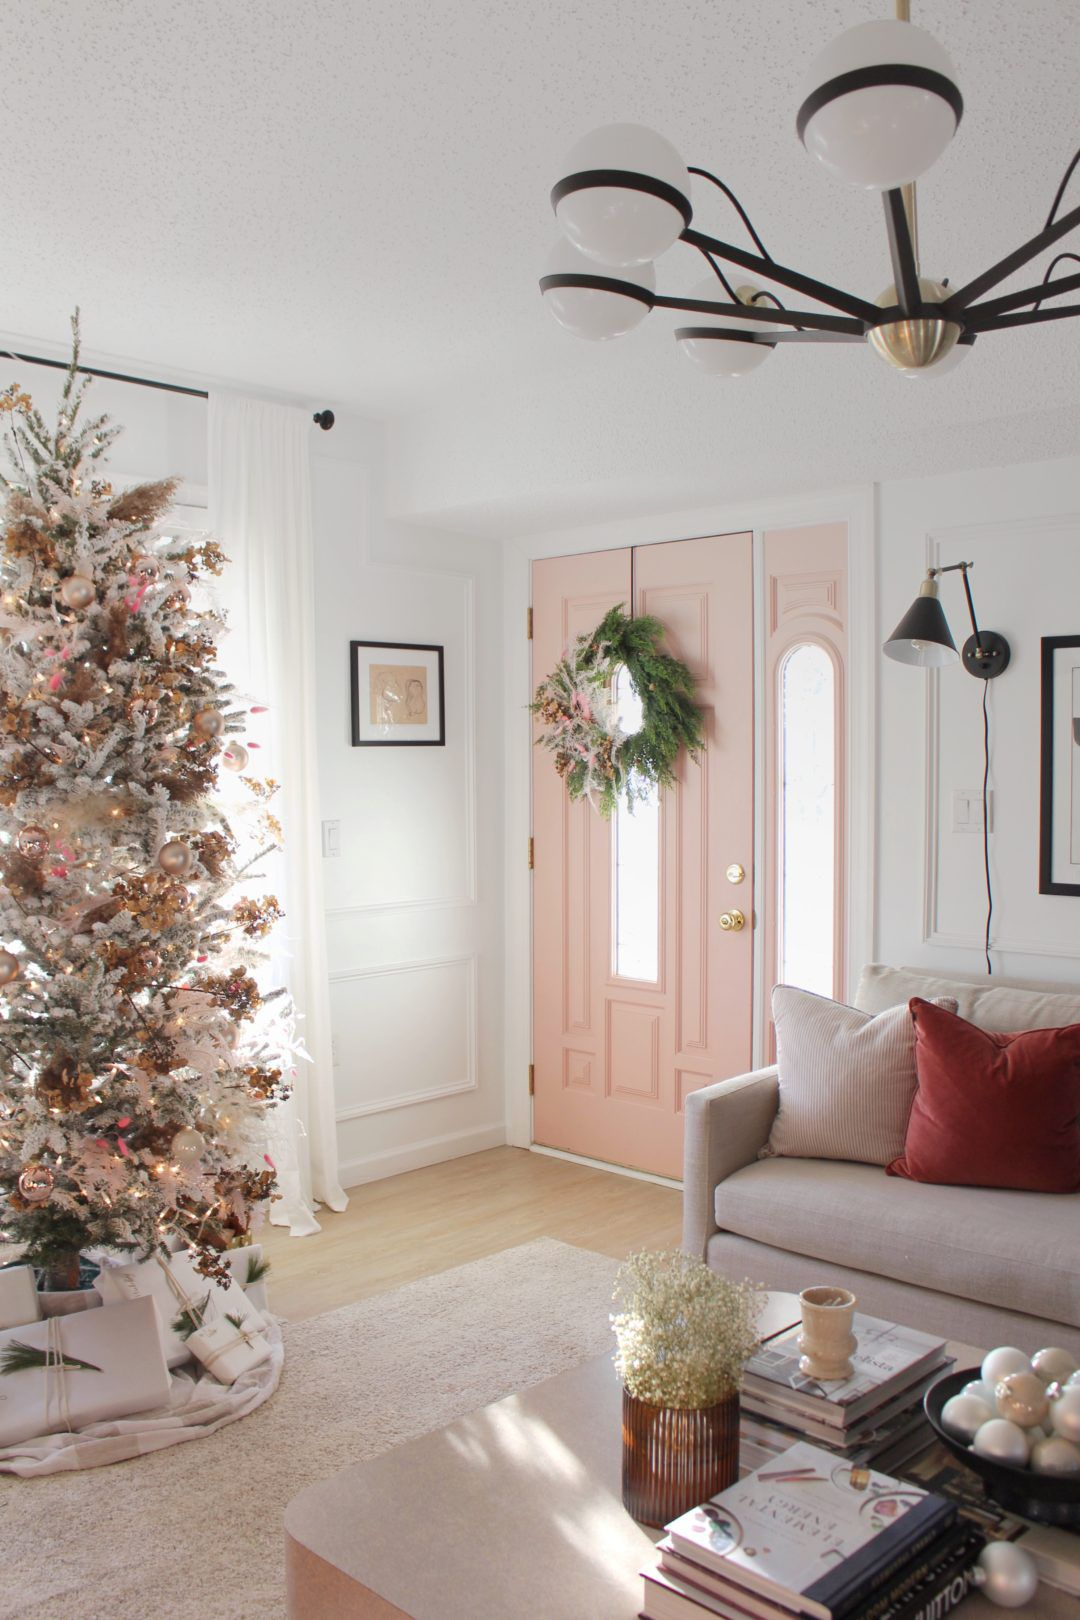 16 Creative Ways to Decorate Your Christmas Tree This Year